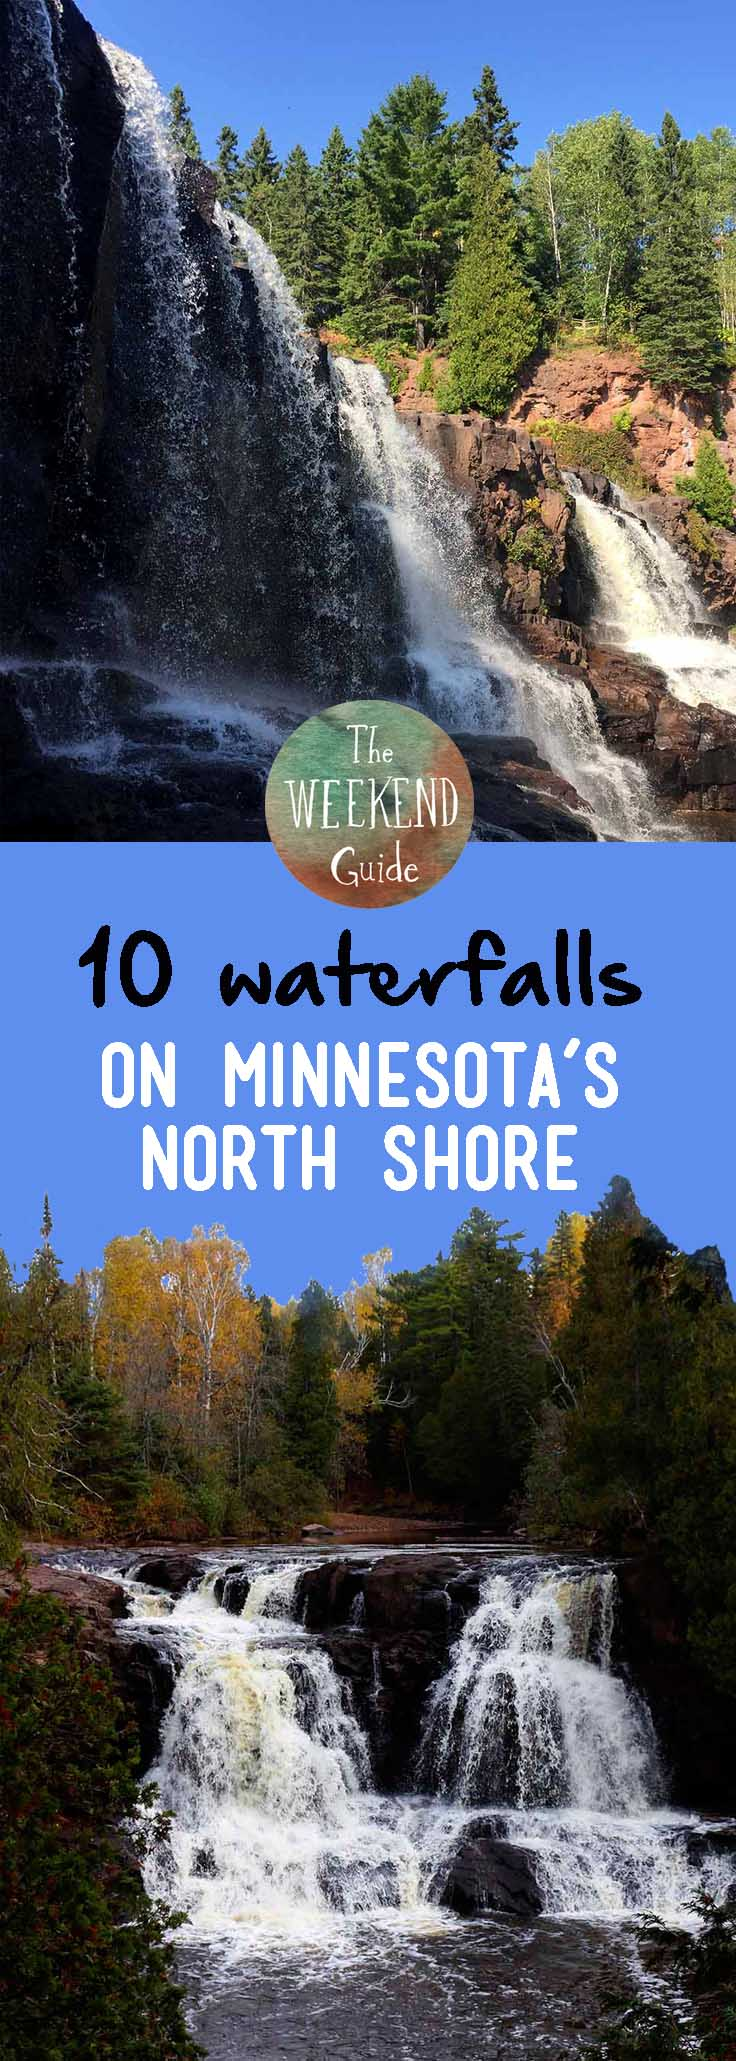 10 Waterfalls on Minnesota's North Shore - Here is a guide to 10 waterfalls you should be sure to see when visiting the North Shore of Lake Superior in Minnesota. - theweekendguide.com